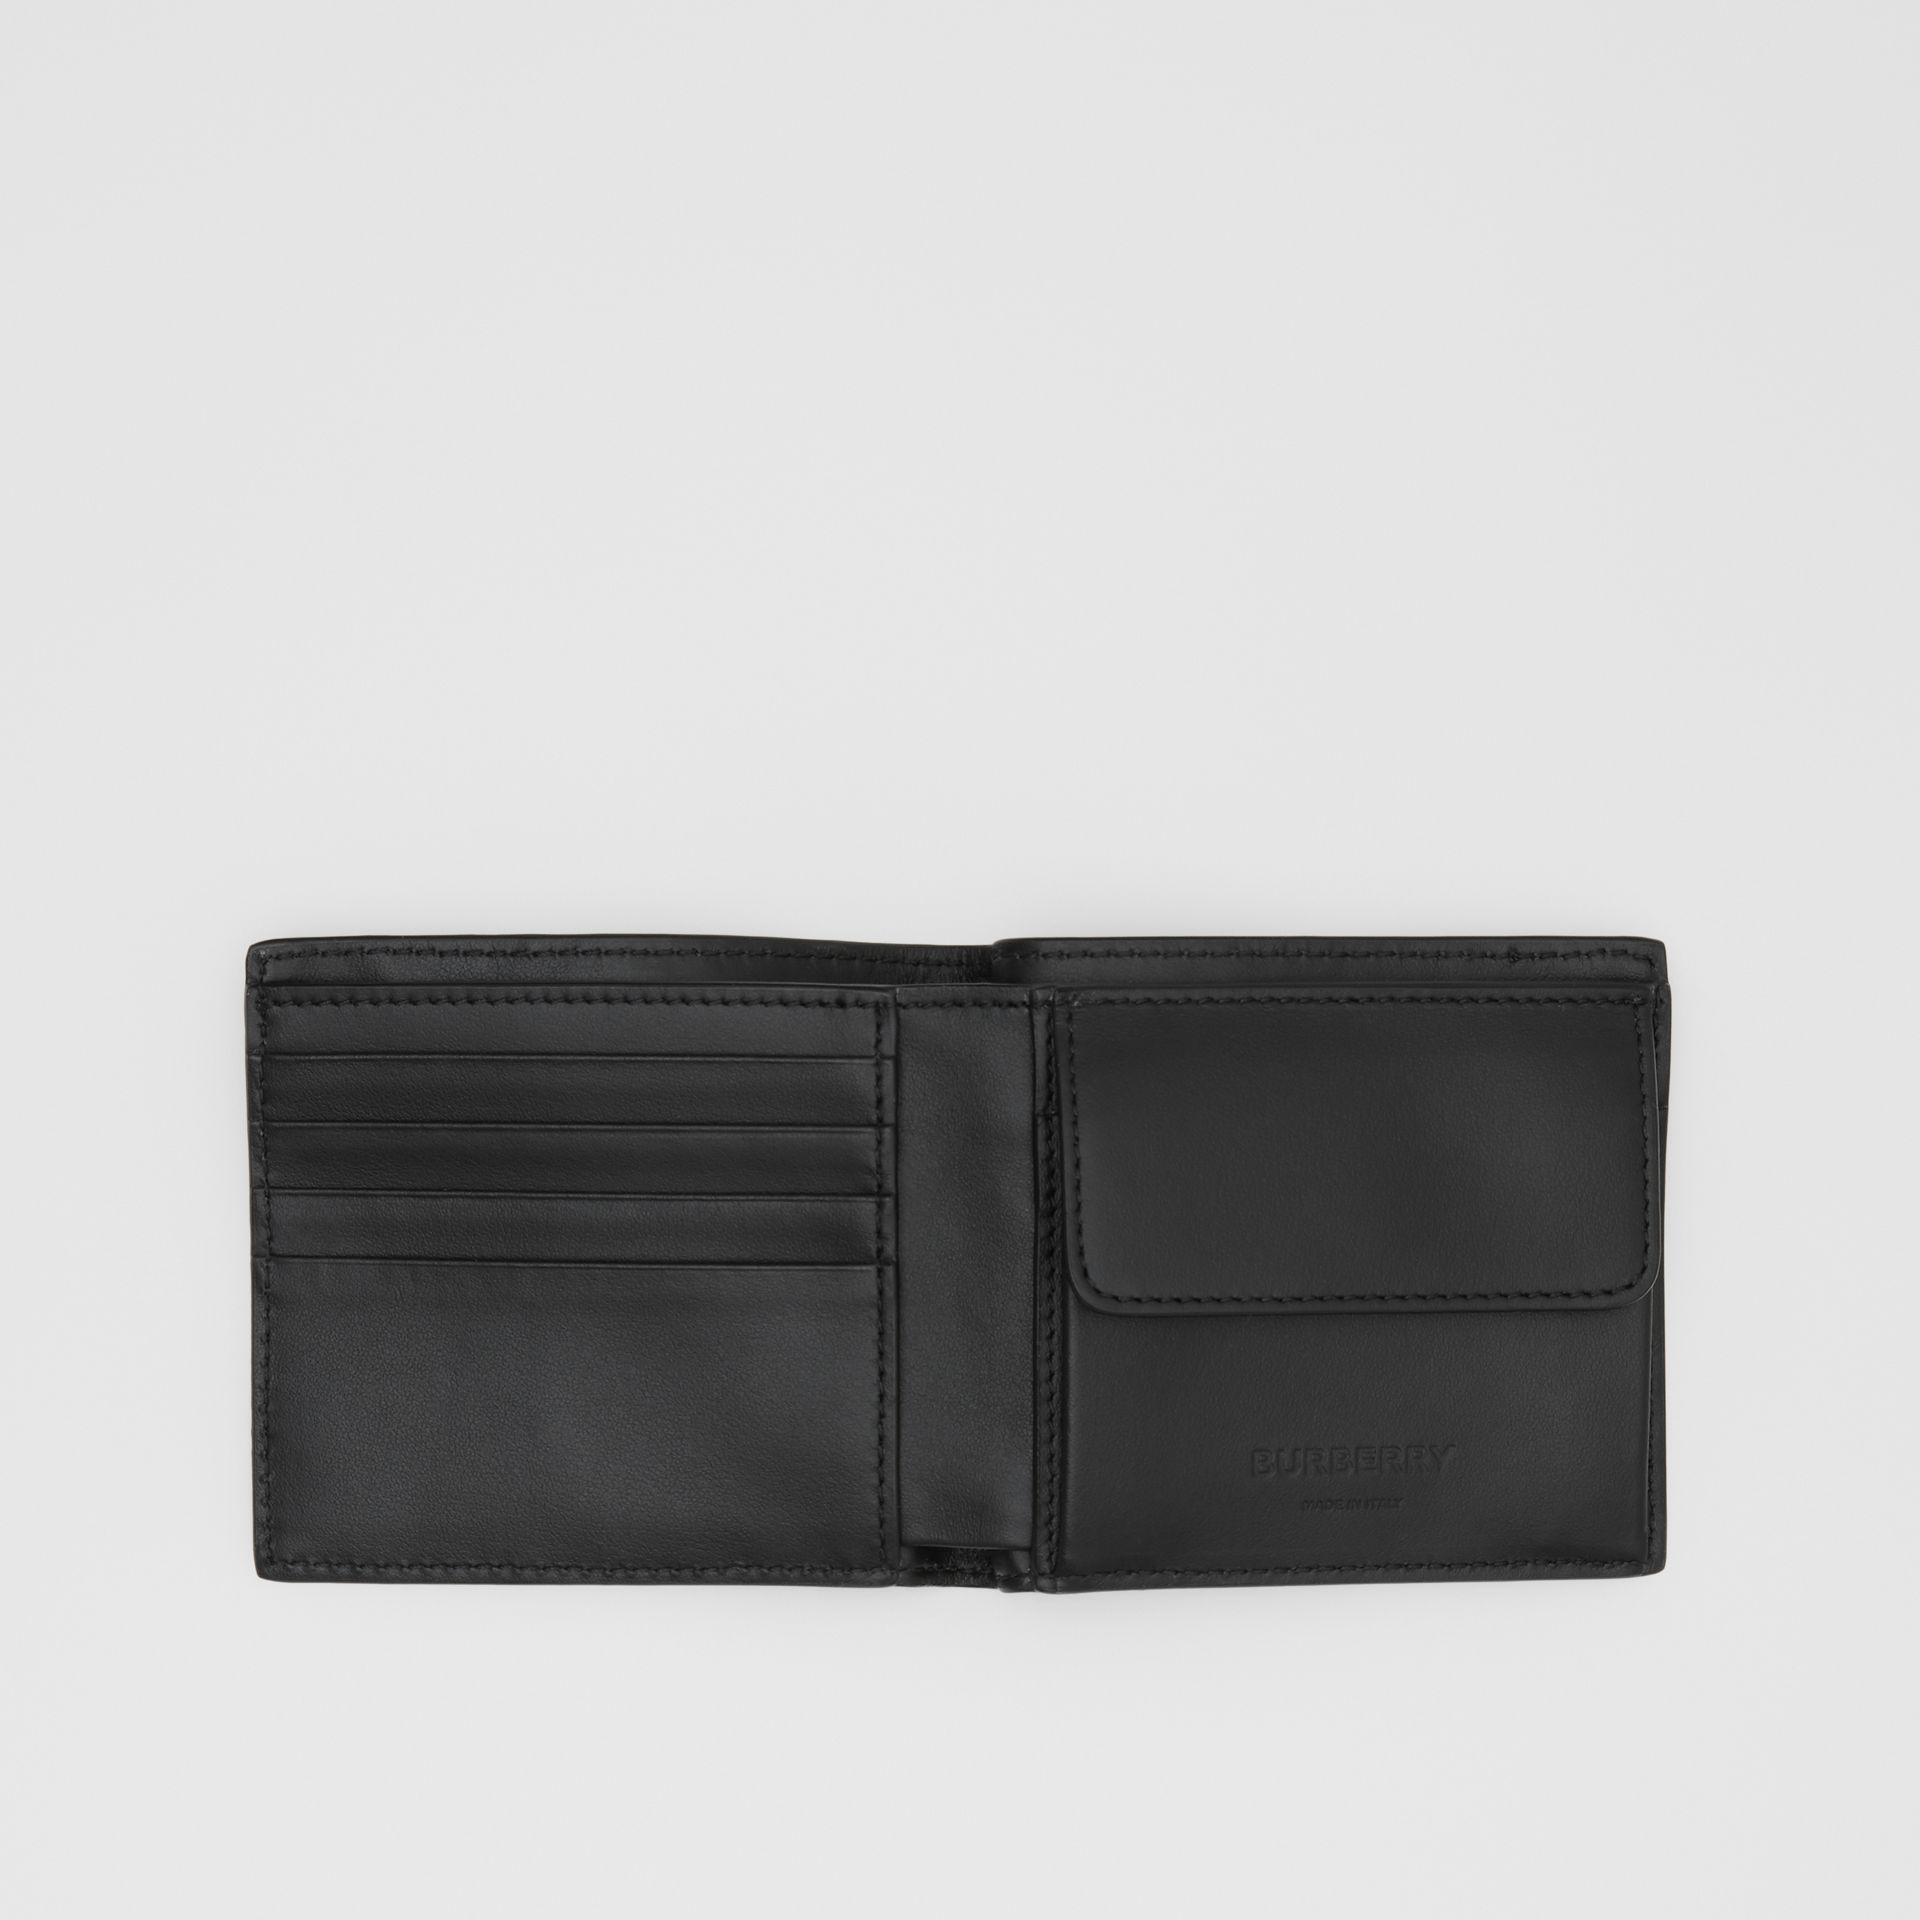 Monogram Leather International Bifold Coin Wallet in Black - Men | Burberry United Kingdom - gallery image 2